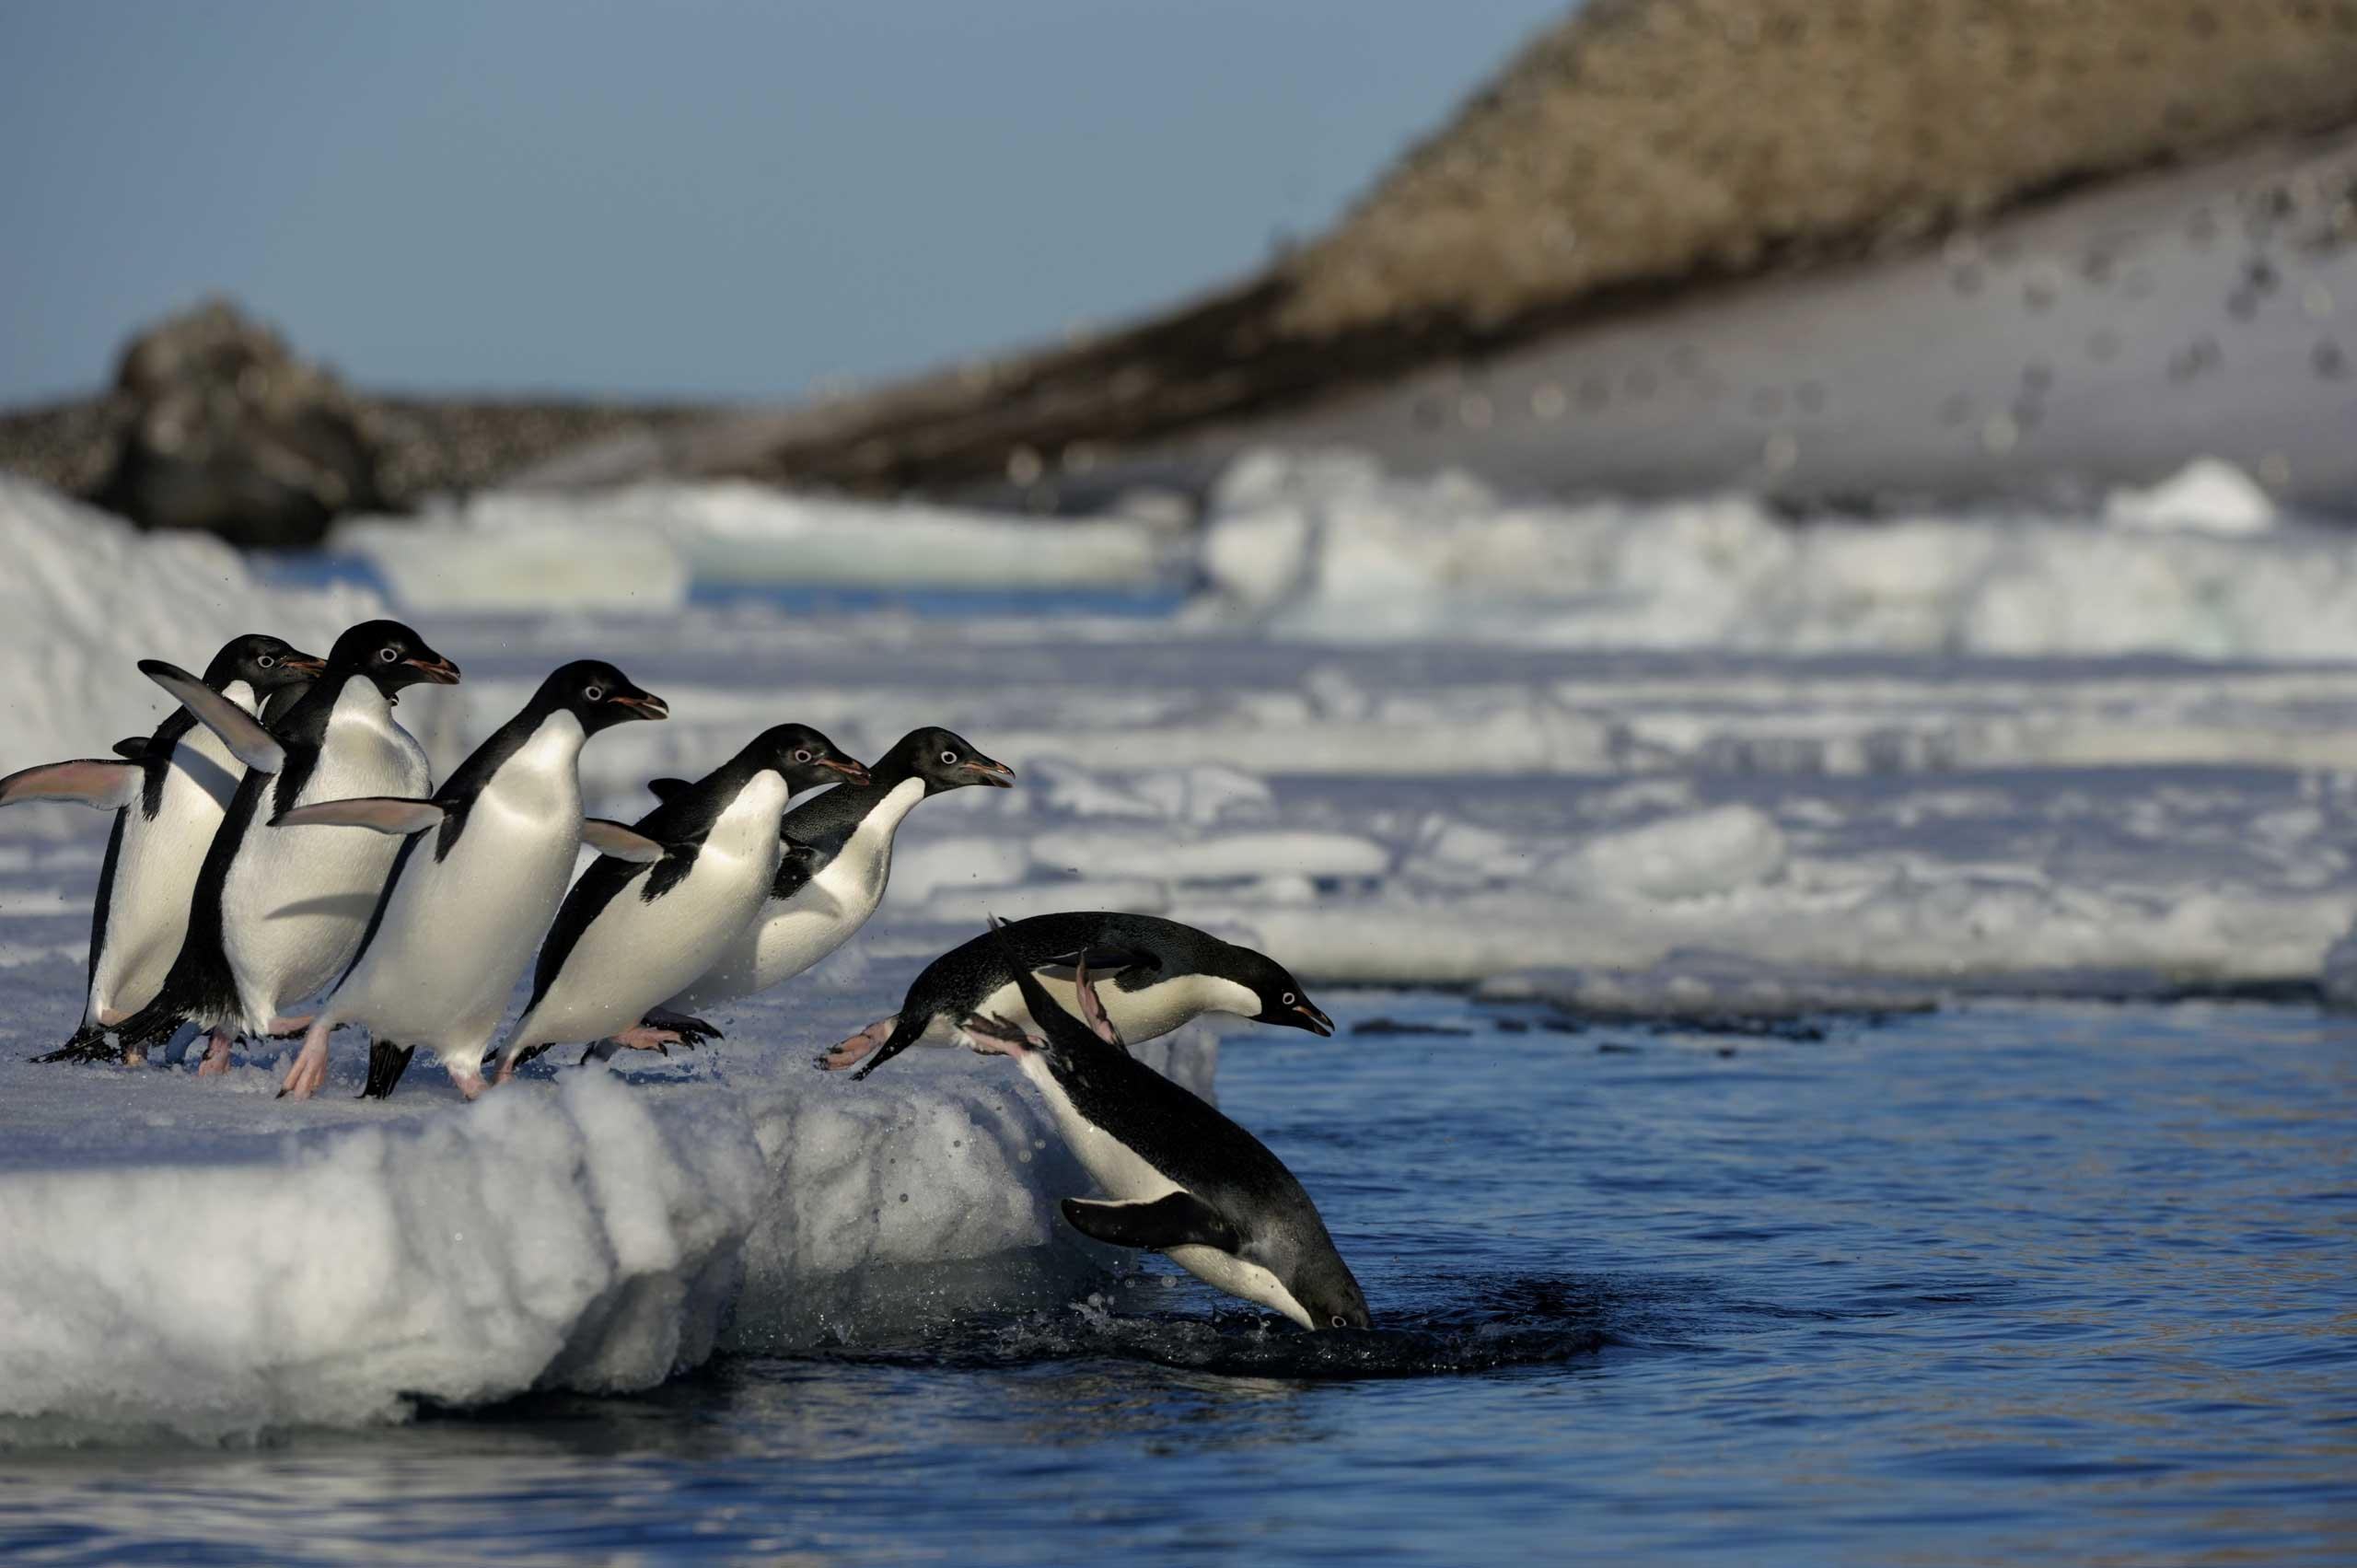 Penguins jump into the water on Paulet Island in Antarctica.